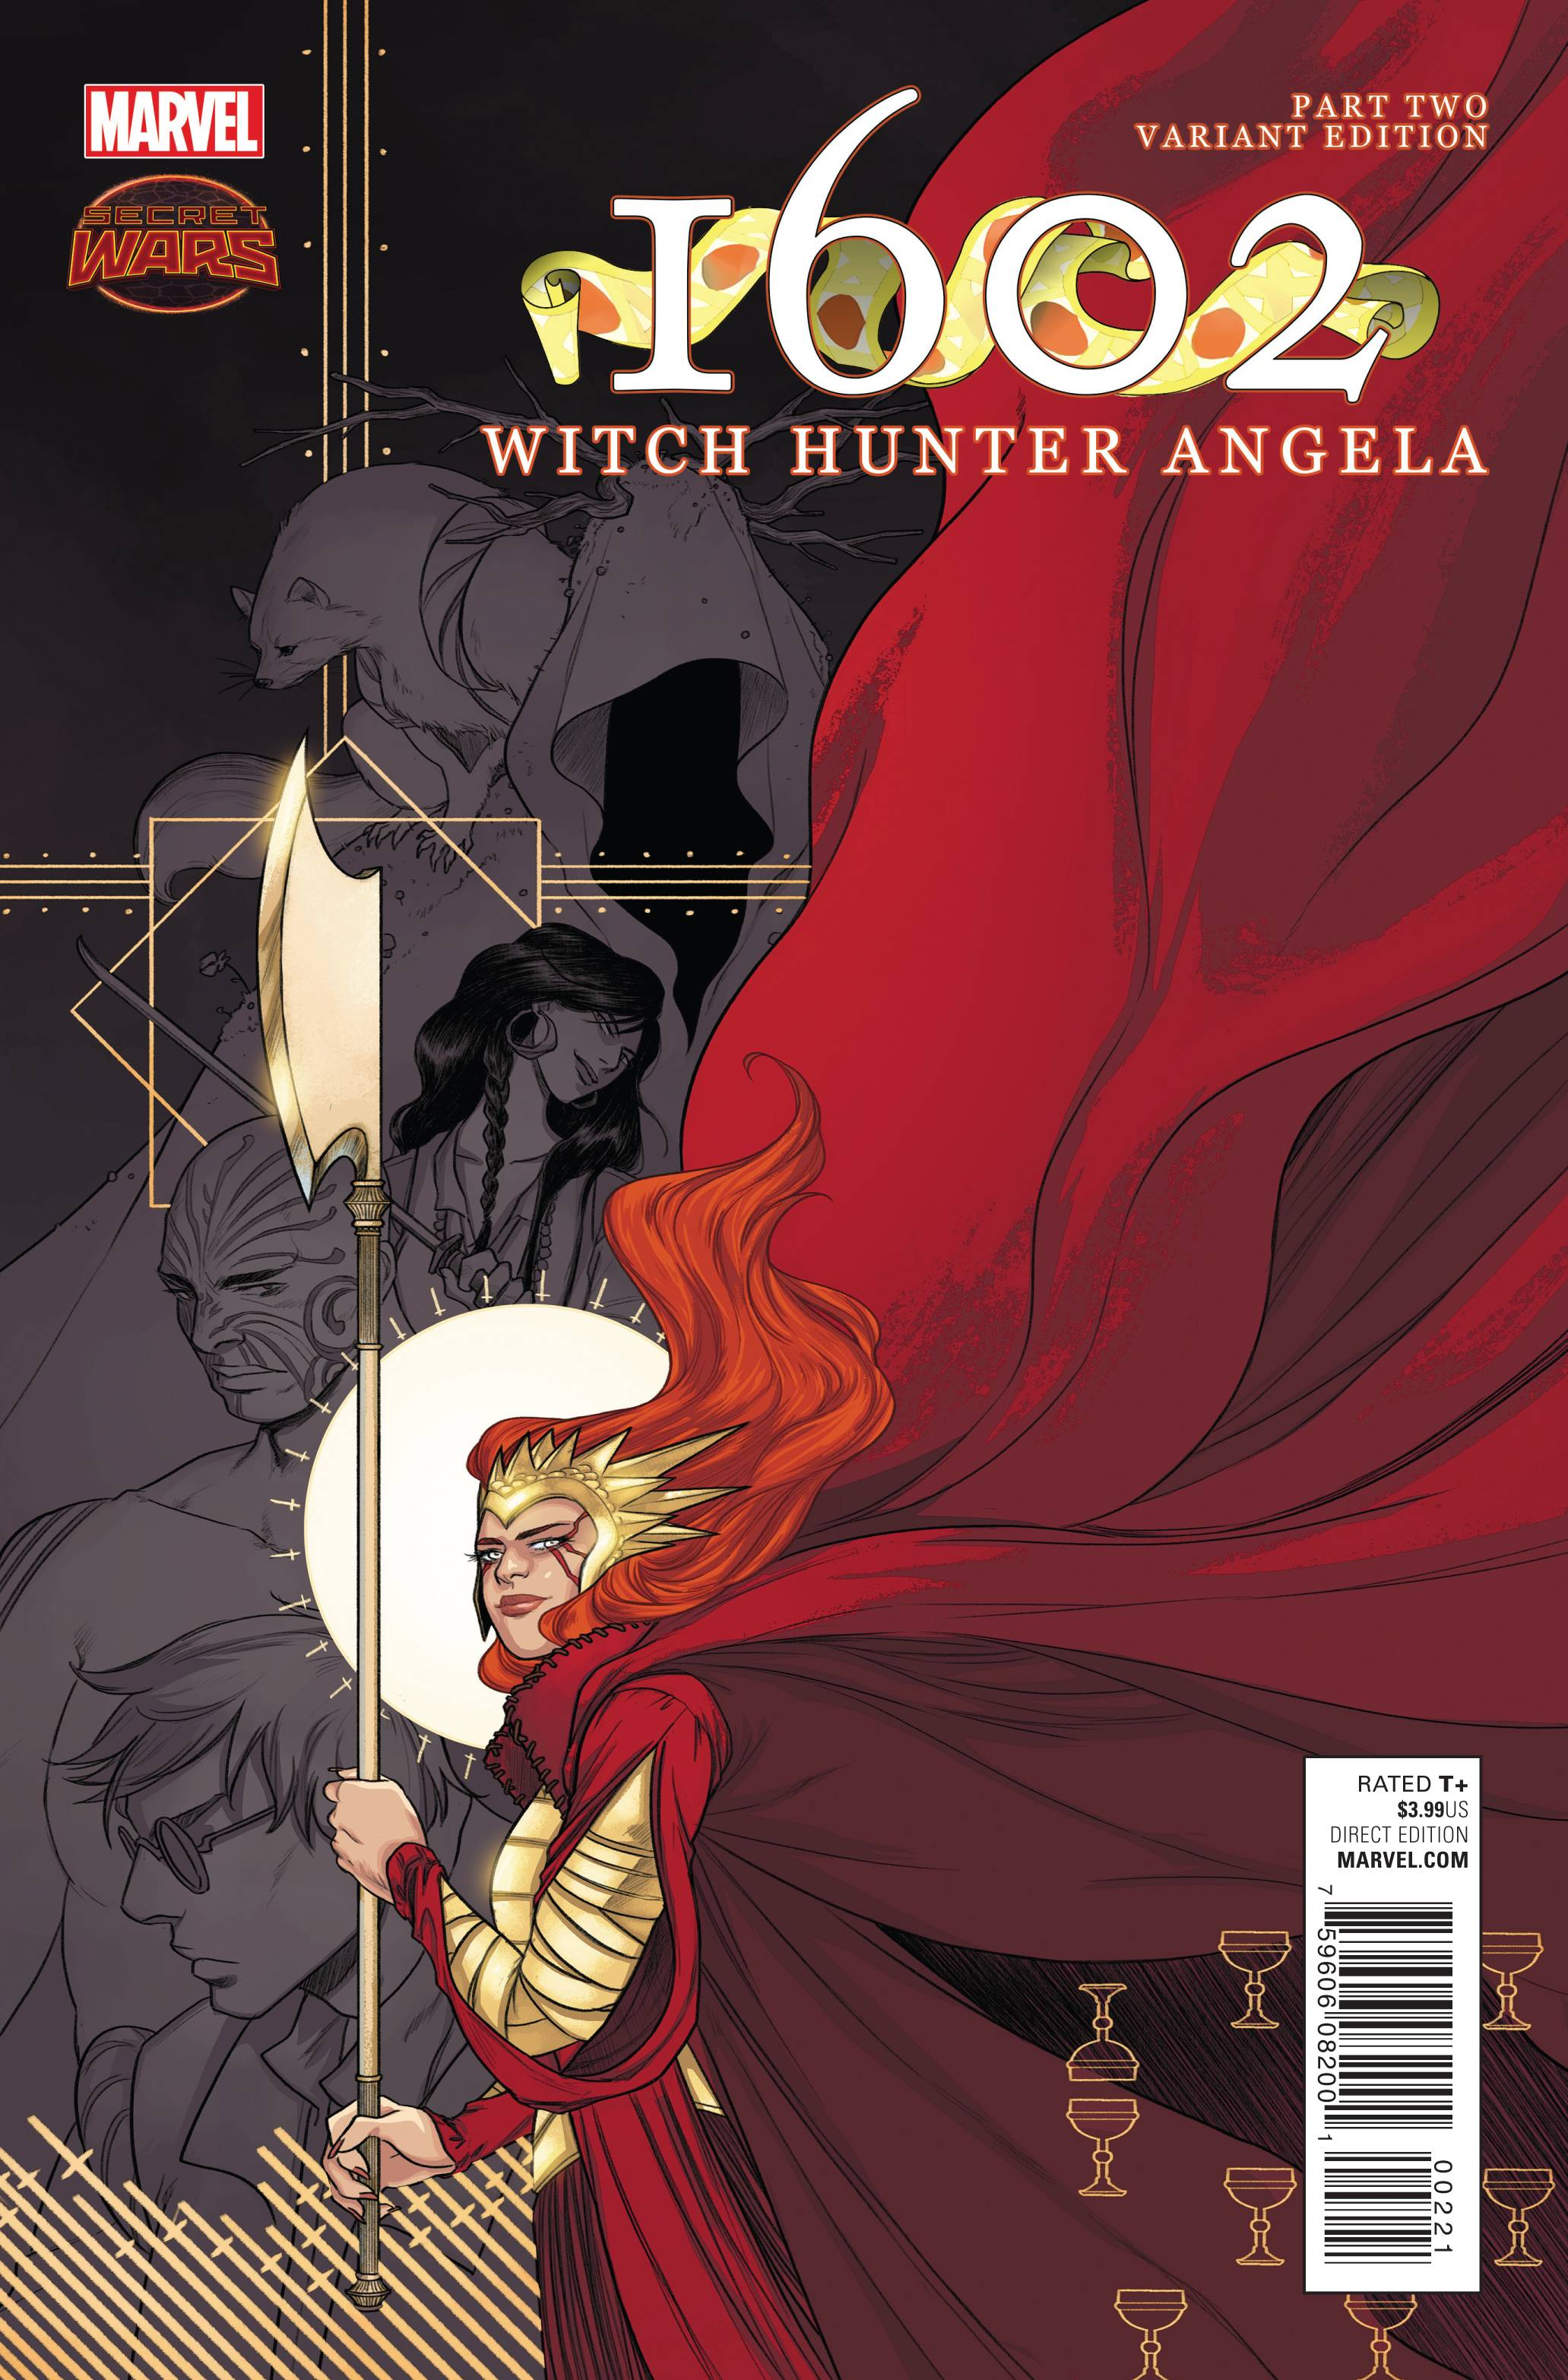 Read online 1602 Witch Hunter Angela comic -  Issue #2 - 2